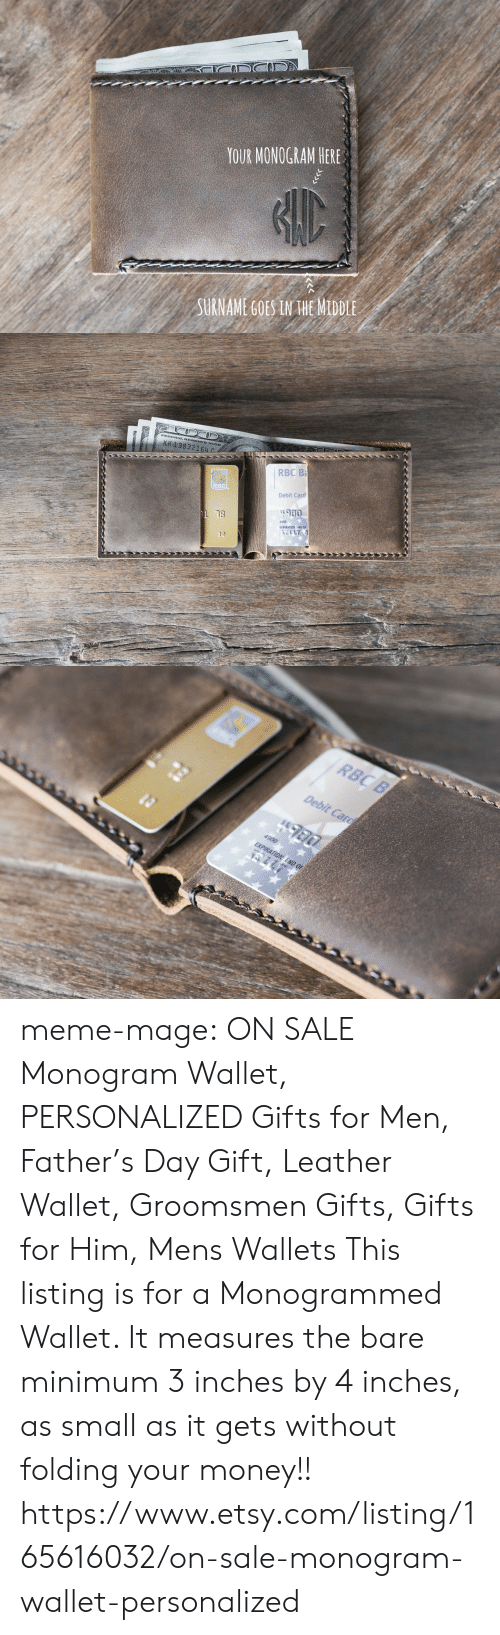 Meme, Money, and Tumblr: YOUR MONOGRAM HERE  SURNAME GOES IN HE MIDDLE   KK 138  NOTE  832164 с  RBC B  BC  Debit Card  #900  13  4900  EXPIRATION: END OF   RBC B  Debit Carg  EXPIRATION: END OF meme-mage:      ON SALE Monogram Wallet, PERSONALIZED Gifts for Men, Father's Day Gift, Leather Wallet, Groomsmen Gifts, Gifts for Him, Mens Wallets      This listing is for a Monogrammed Wallet. It measures the bare minimum 3 inches by 4 inches, as small as it gets without folding your money!!   https://www.etsy.com/listing/165616032/on-sale-monogram-wallet-personalized